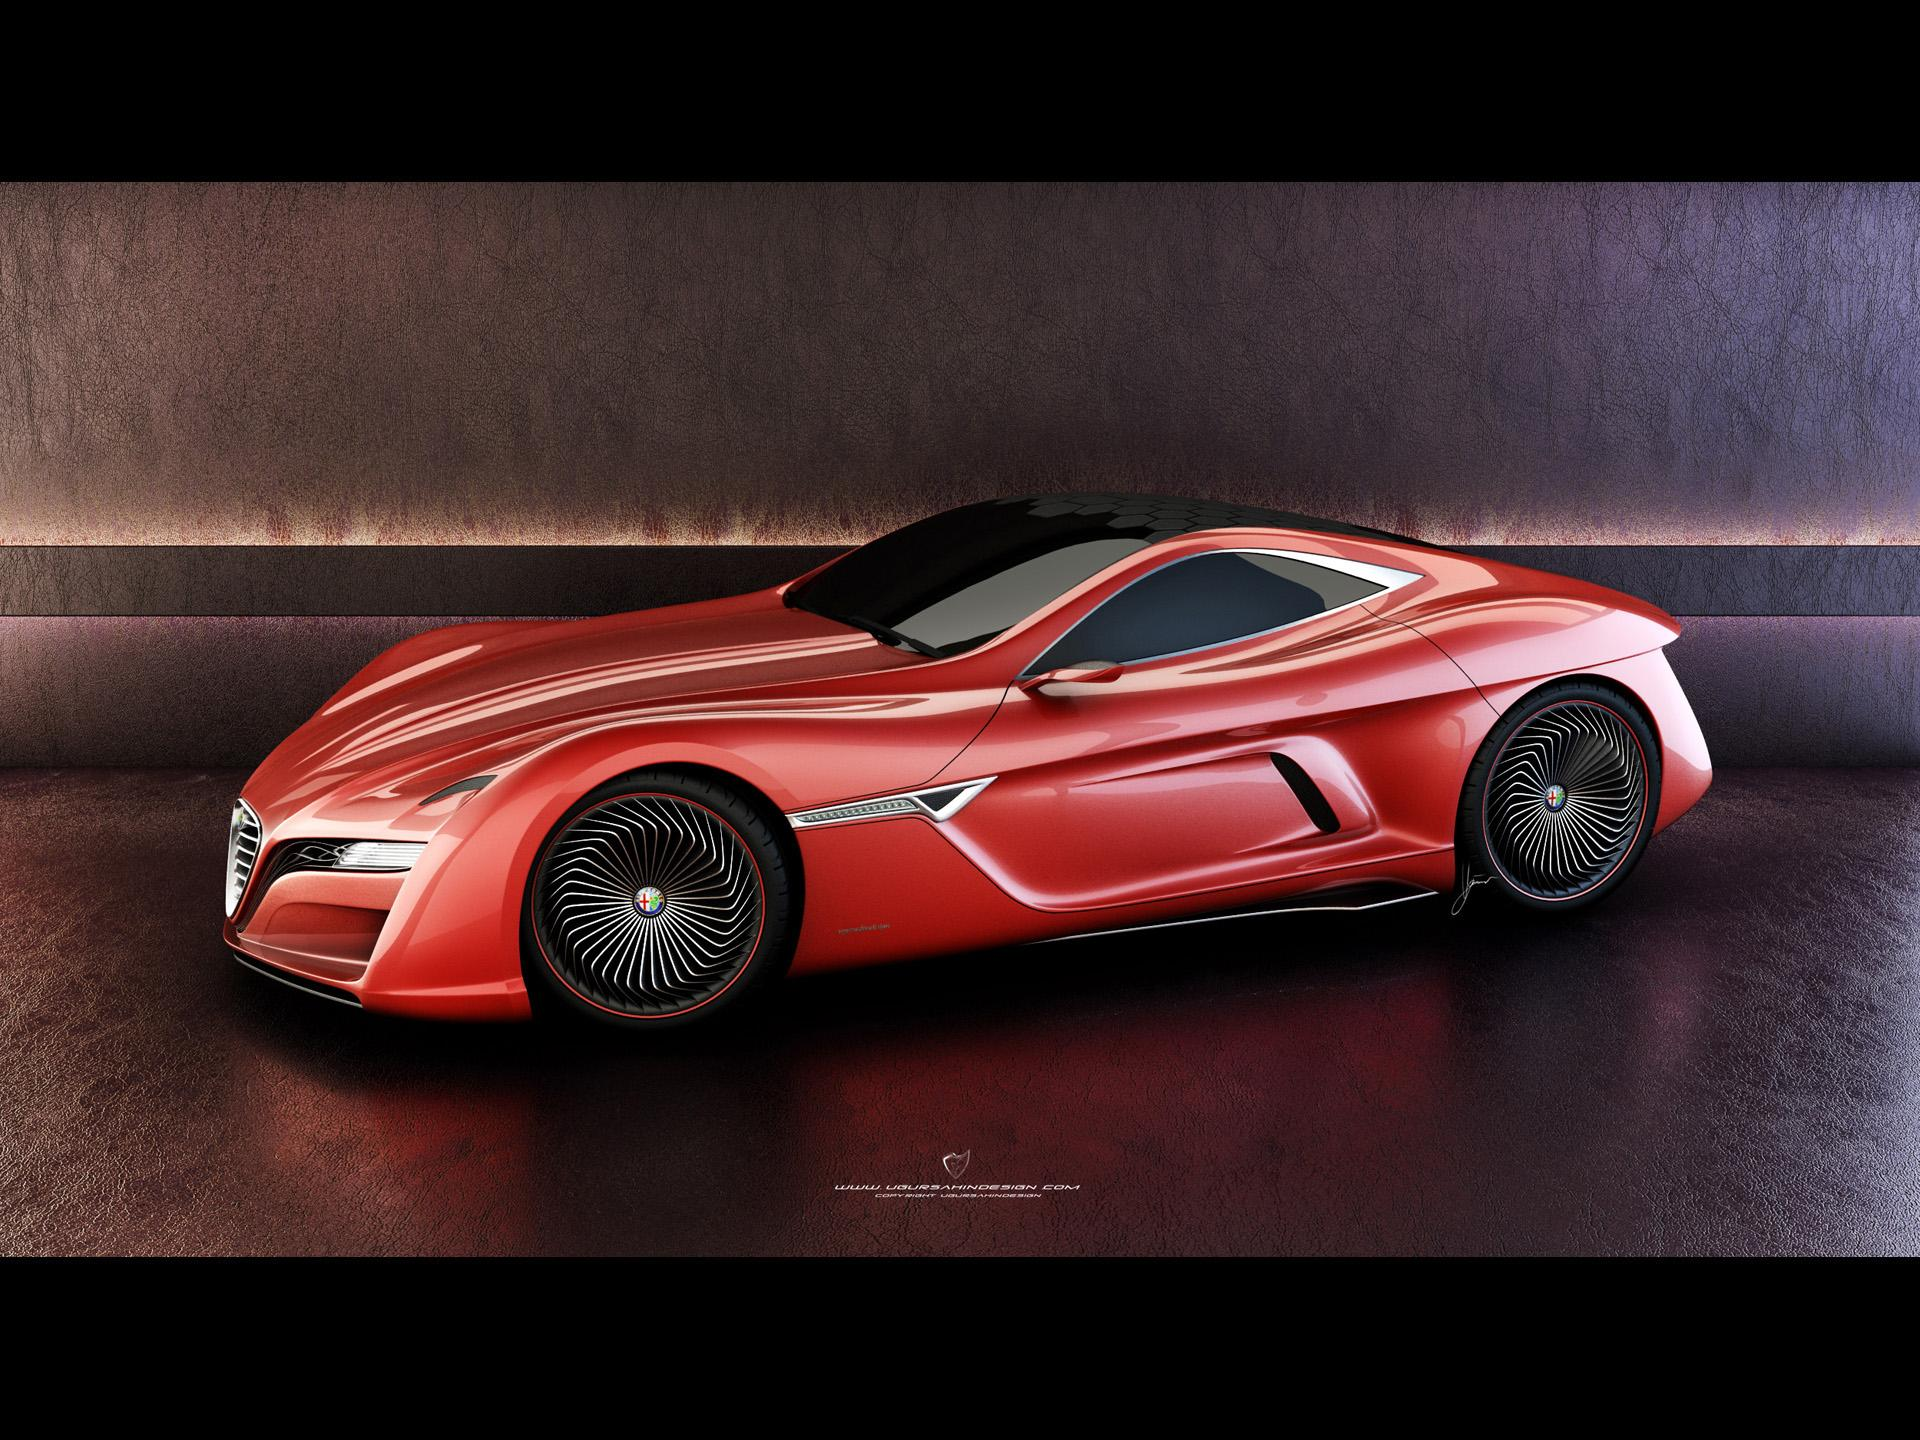 1920x1440 - Alfa Romeo 12C GTS Wallpapers 20